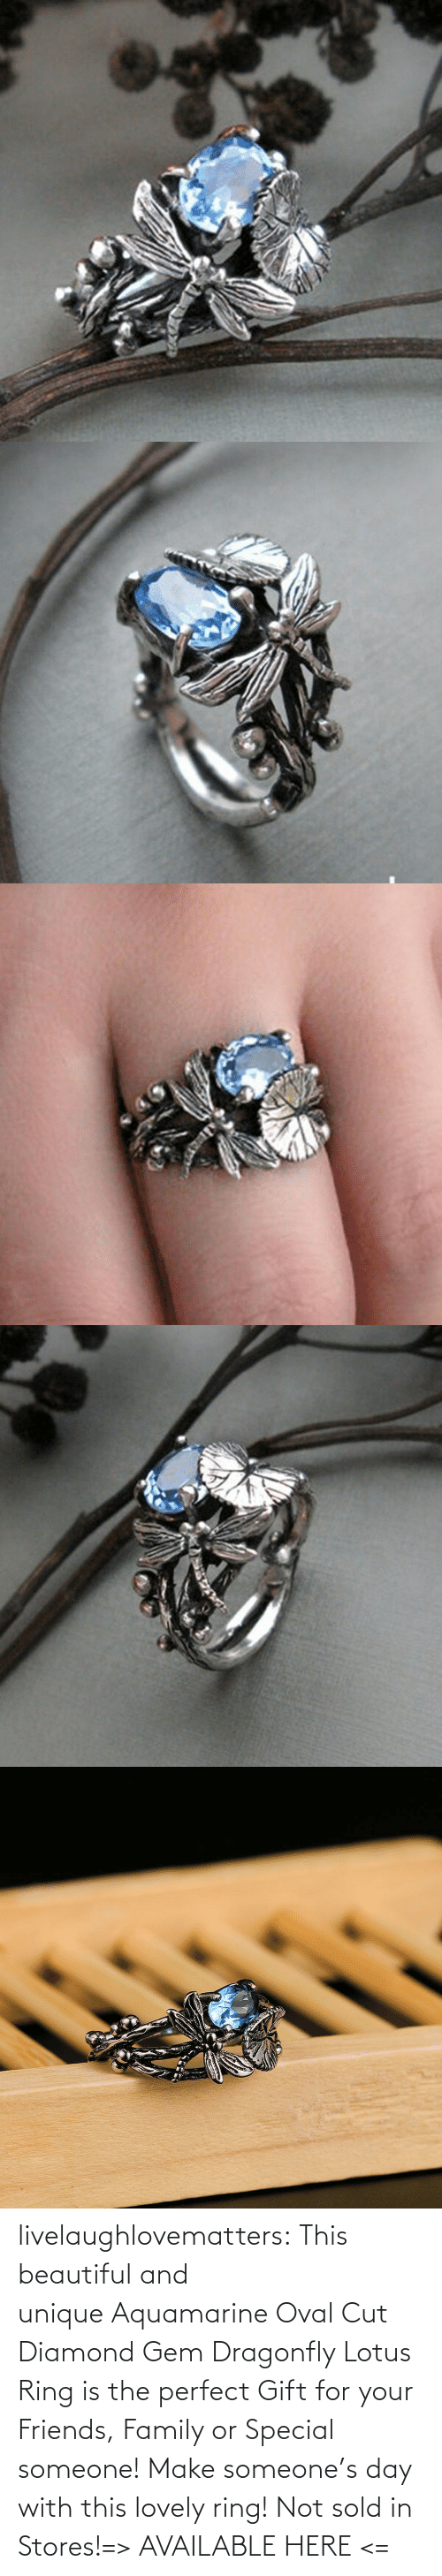 ring: livelaughlovematters:  This beautiful and unique Aquamarine Oval Cut Diamond Gem Dragonfly Lotus Ring is the perfect Gift for your Friends, Family or Special someone! Make someone's day with this lovely ring! Not sold in Stores!=> AVAILABLE HERE <=